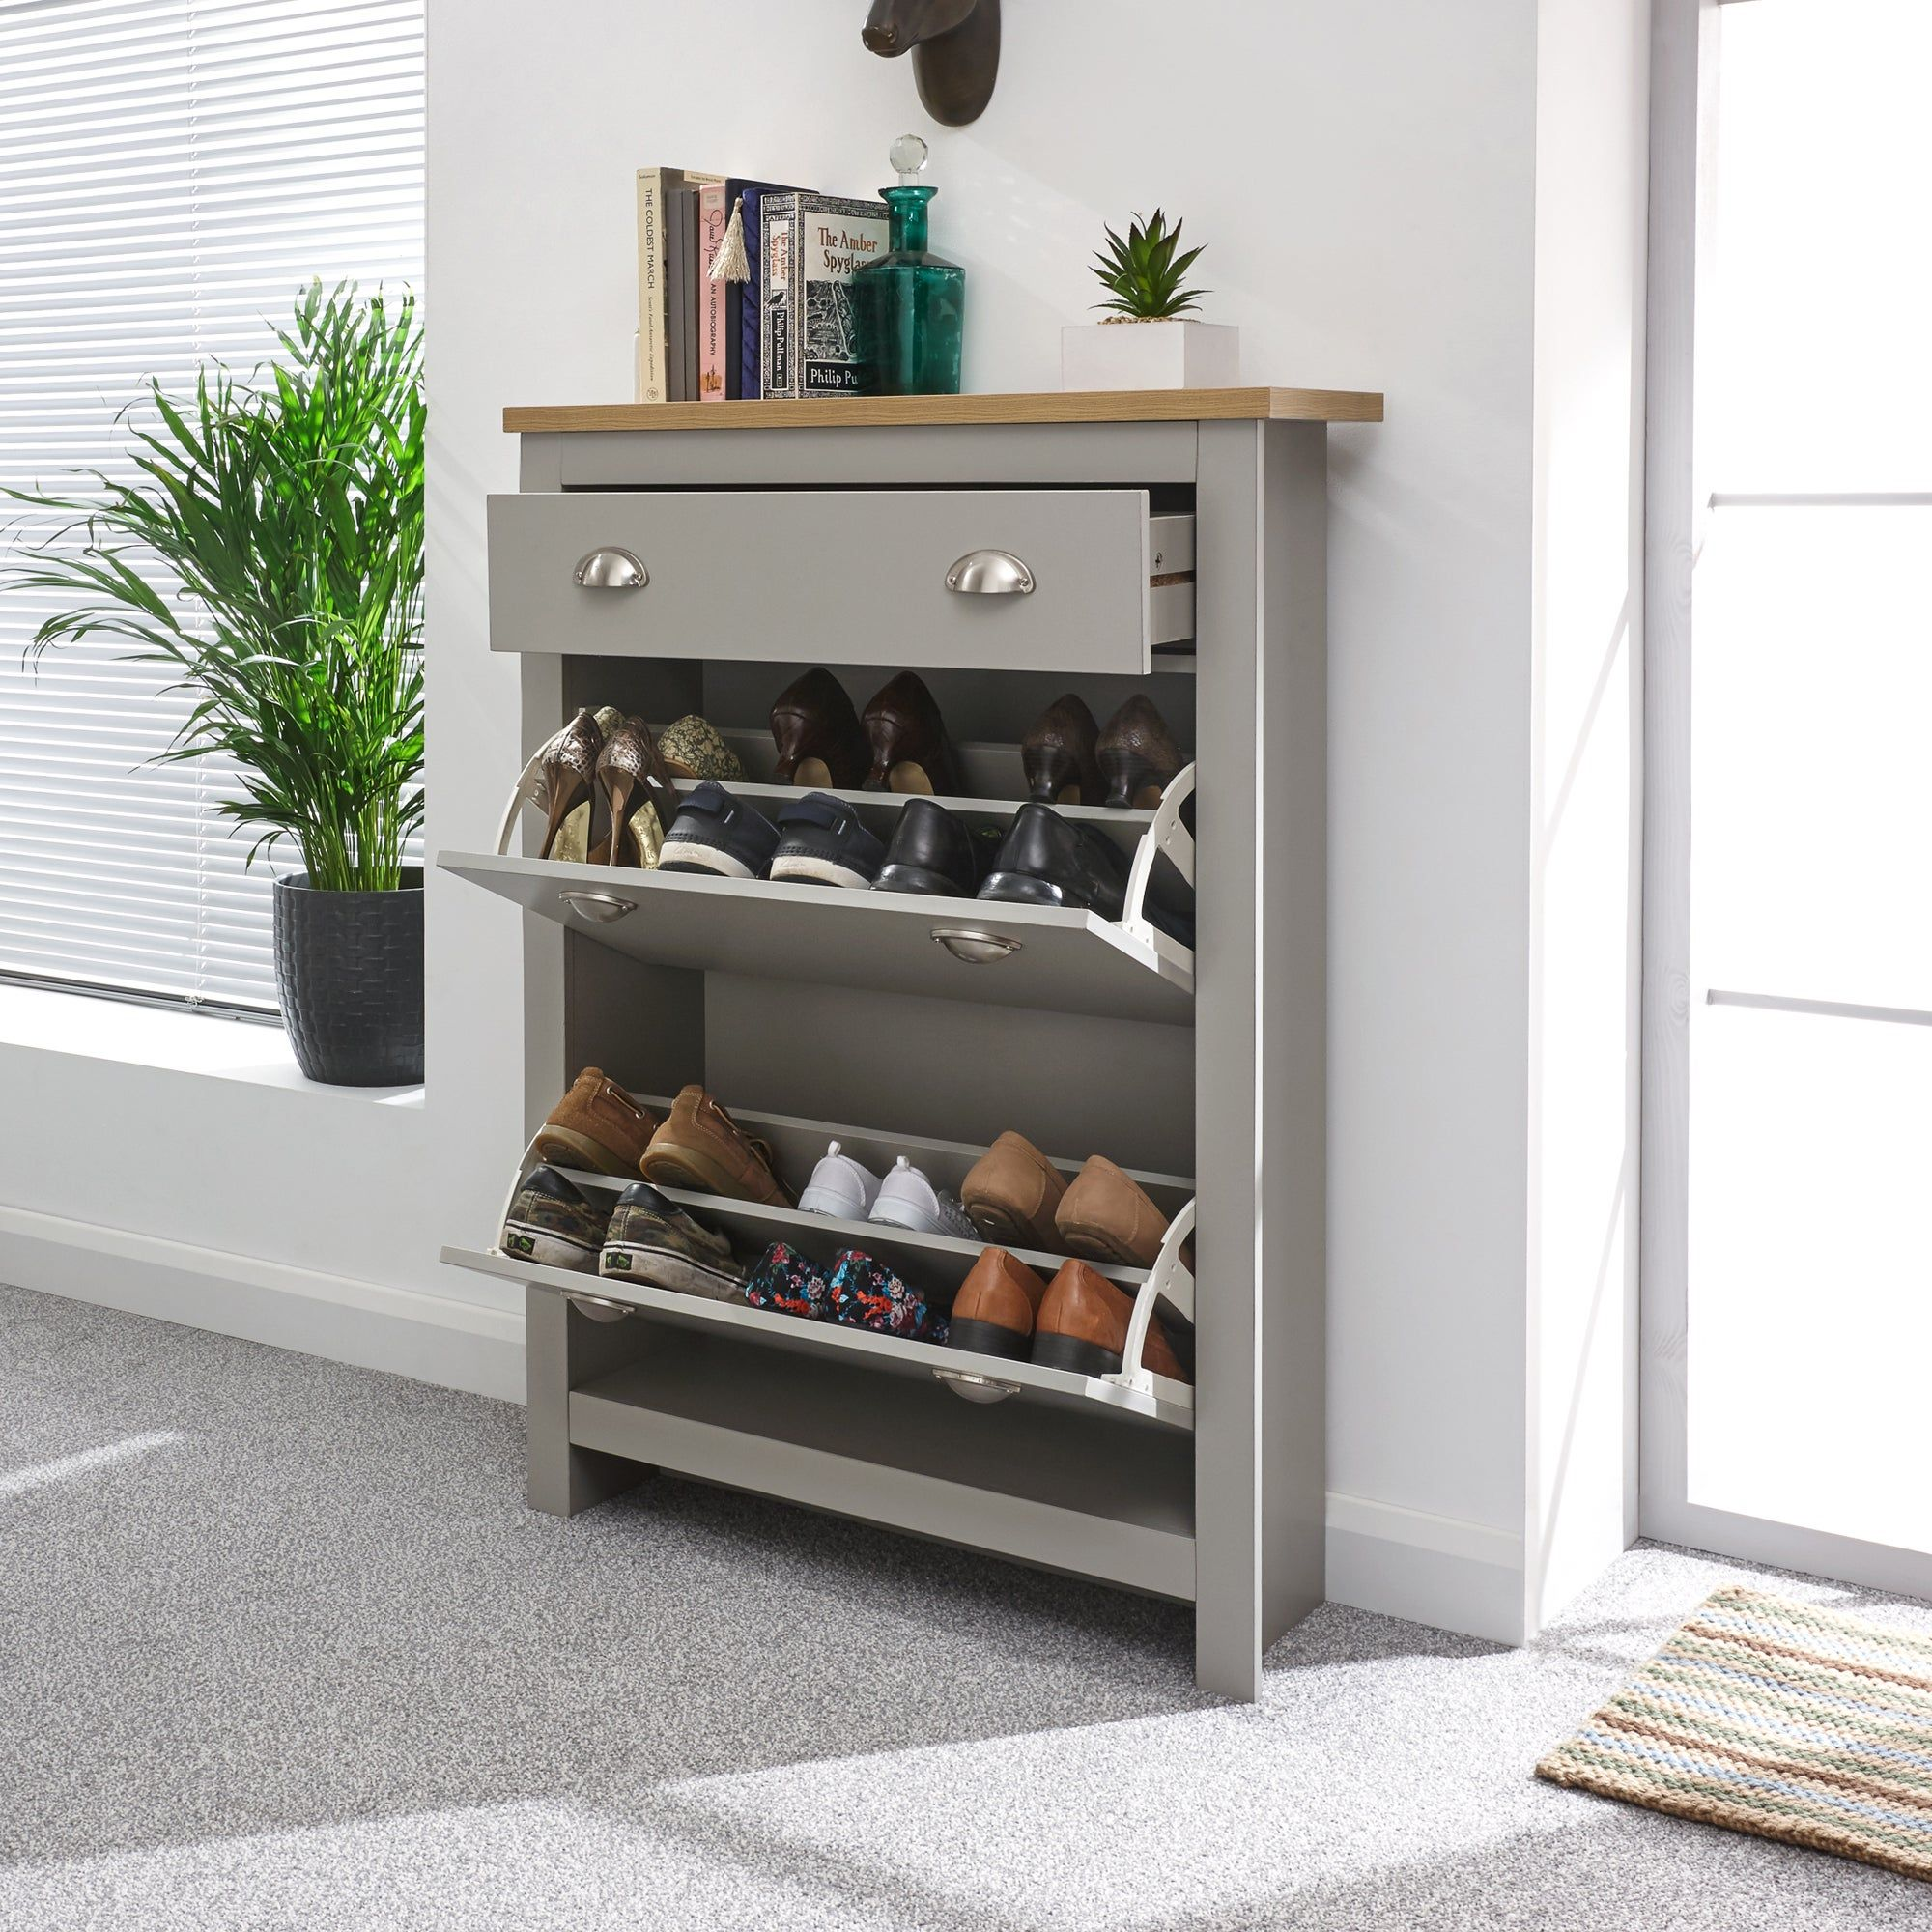 86 Best Shoe Rack Oak Ideas In 2021